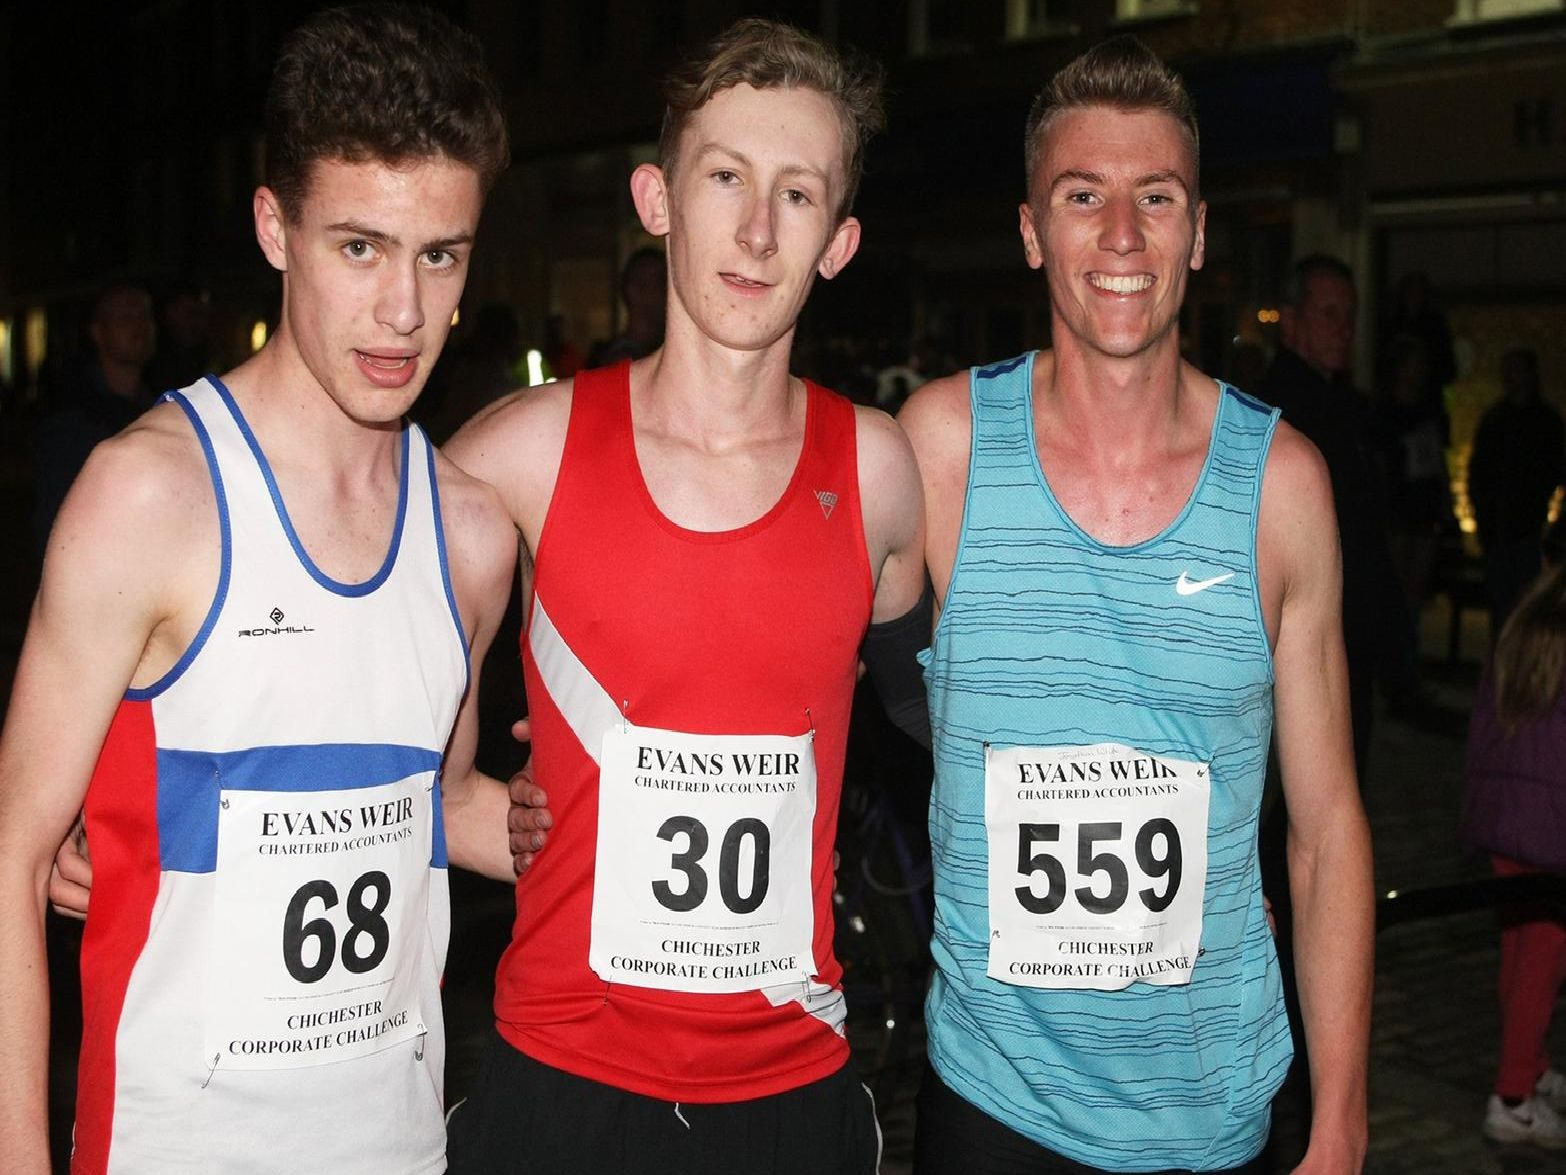 The final race night of the 2019 Chichester Corporate Challenge / Pictures by Derek Martin